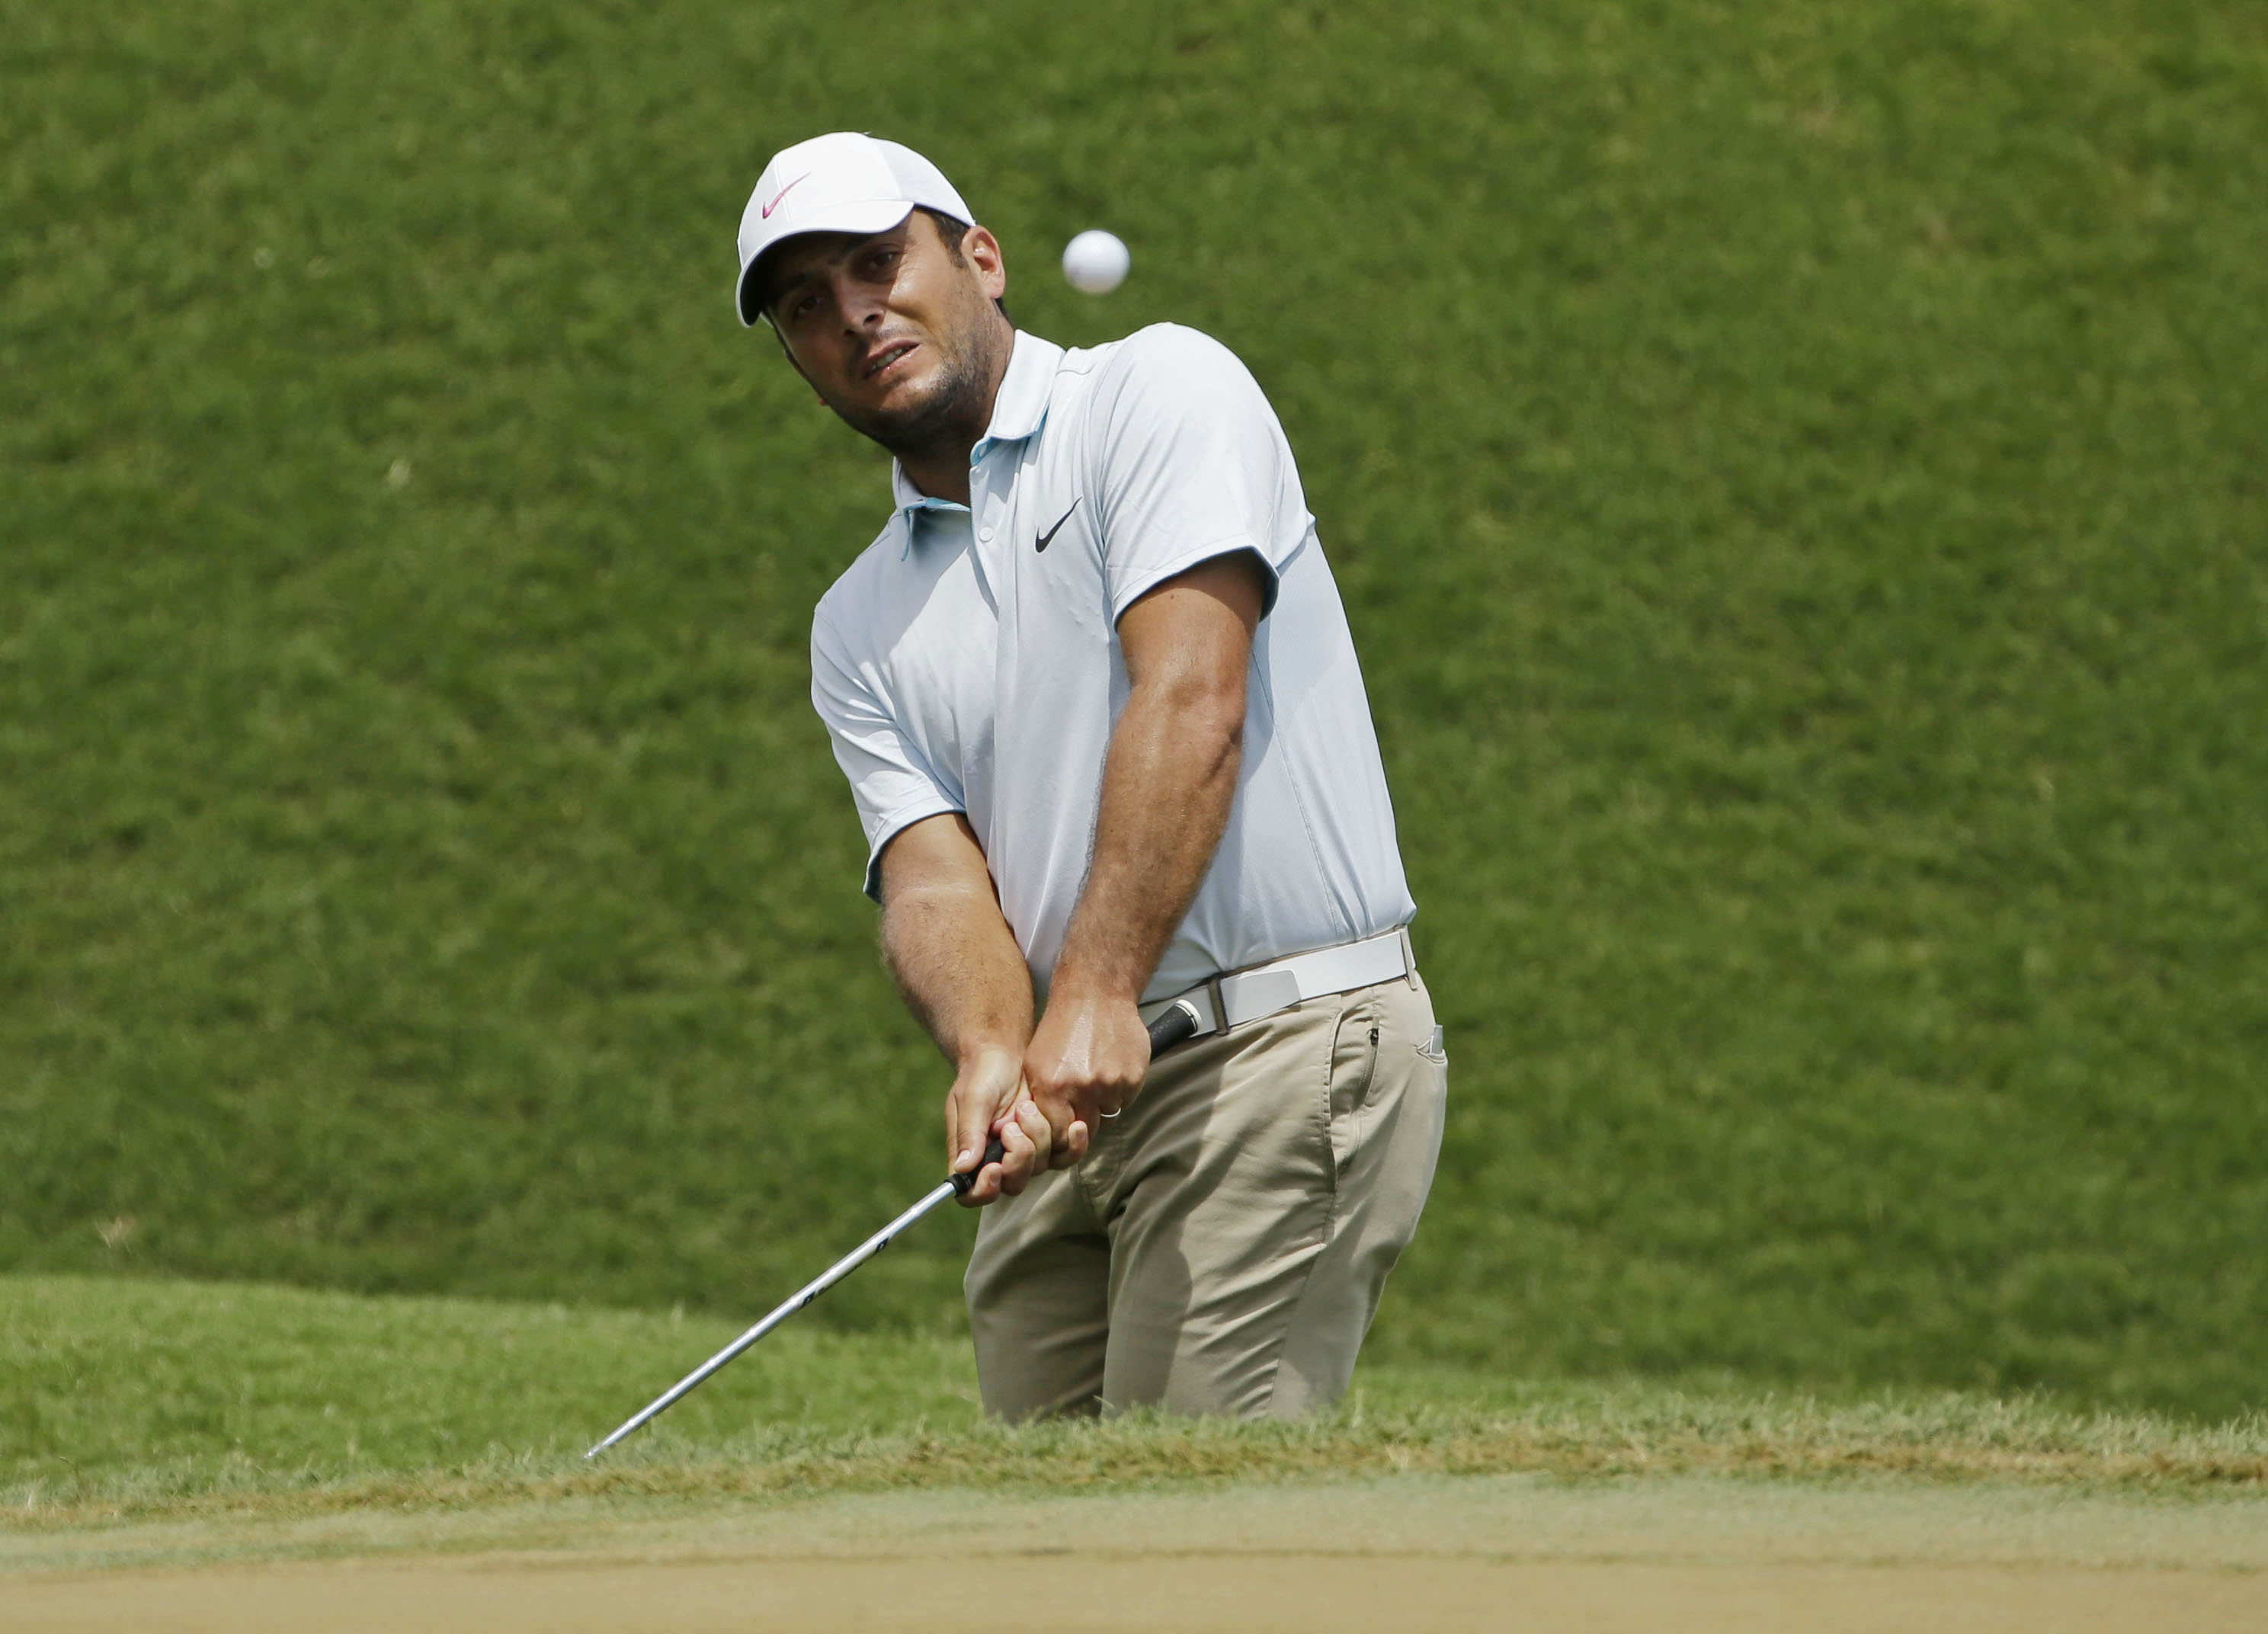 Francesco Molinari of Italy, hits onto the second green during the final round of The Players Championship golf tournament Sunday, May 15, 2016, in Ponte Vedra Beach, Fla. (AP Photo/Chris O'Meara)